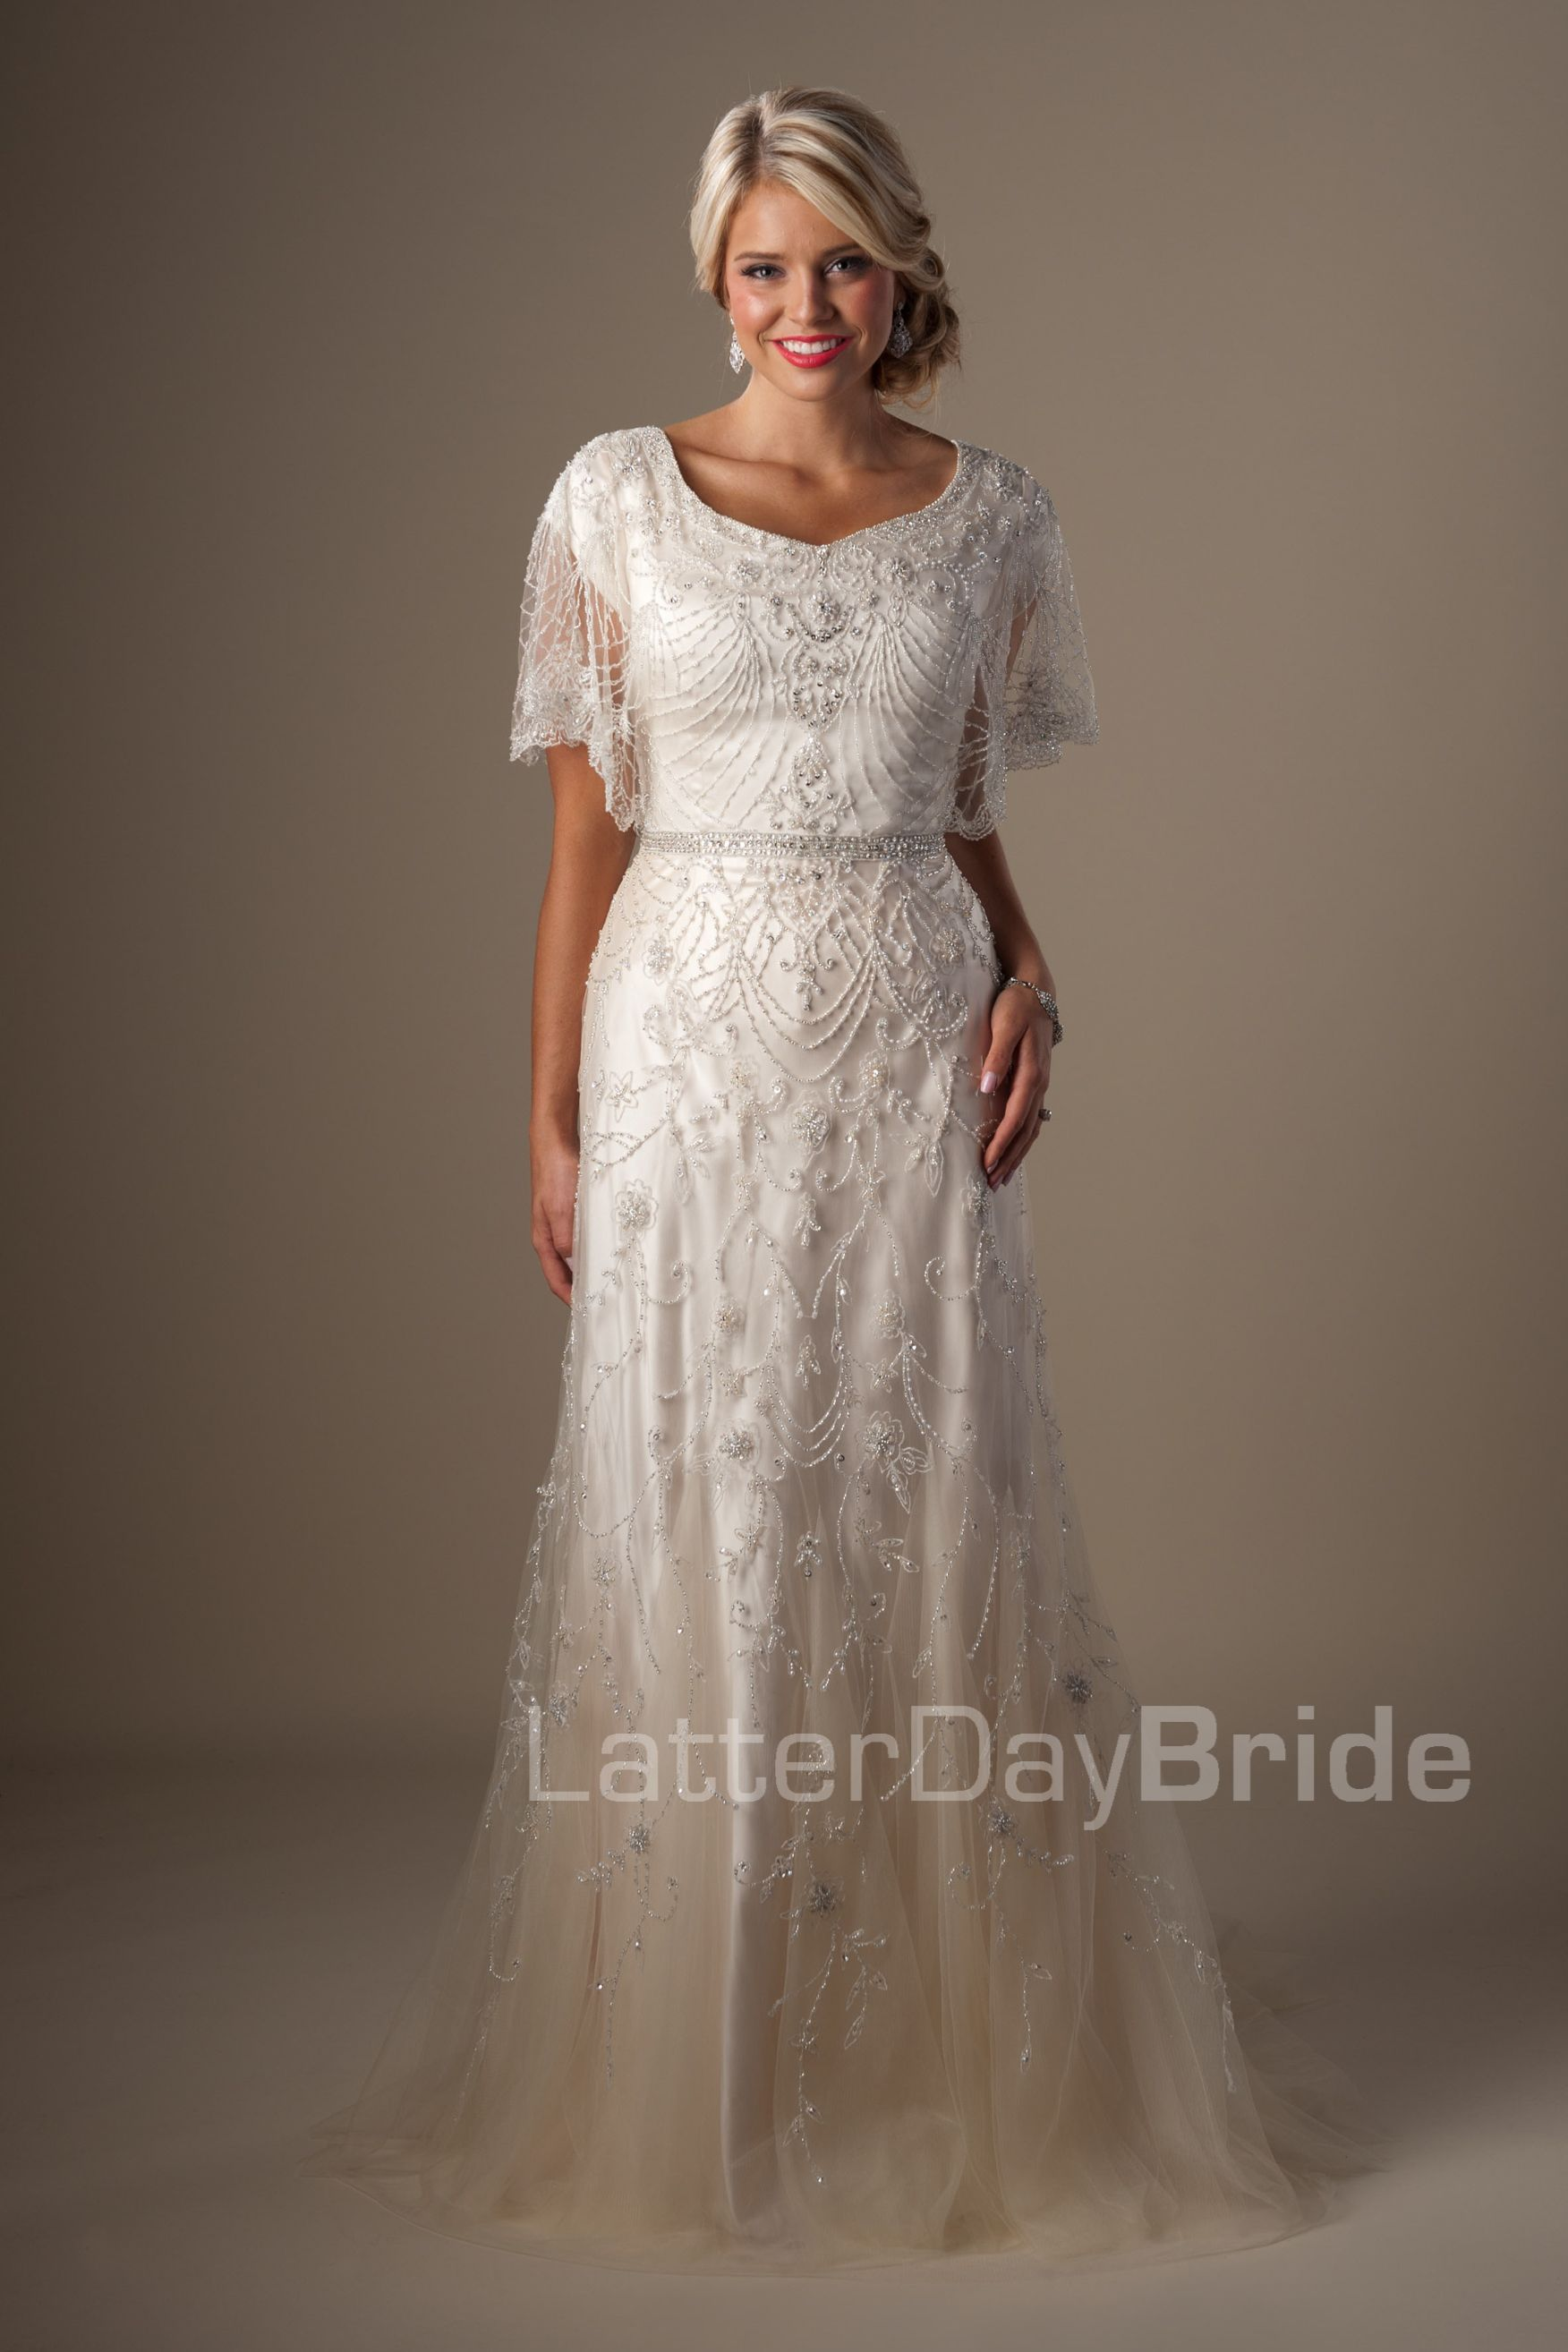 Modest Wedding Dresses Penelope Available At Latterday Bride Go To Our Website